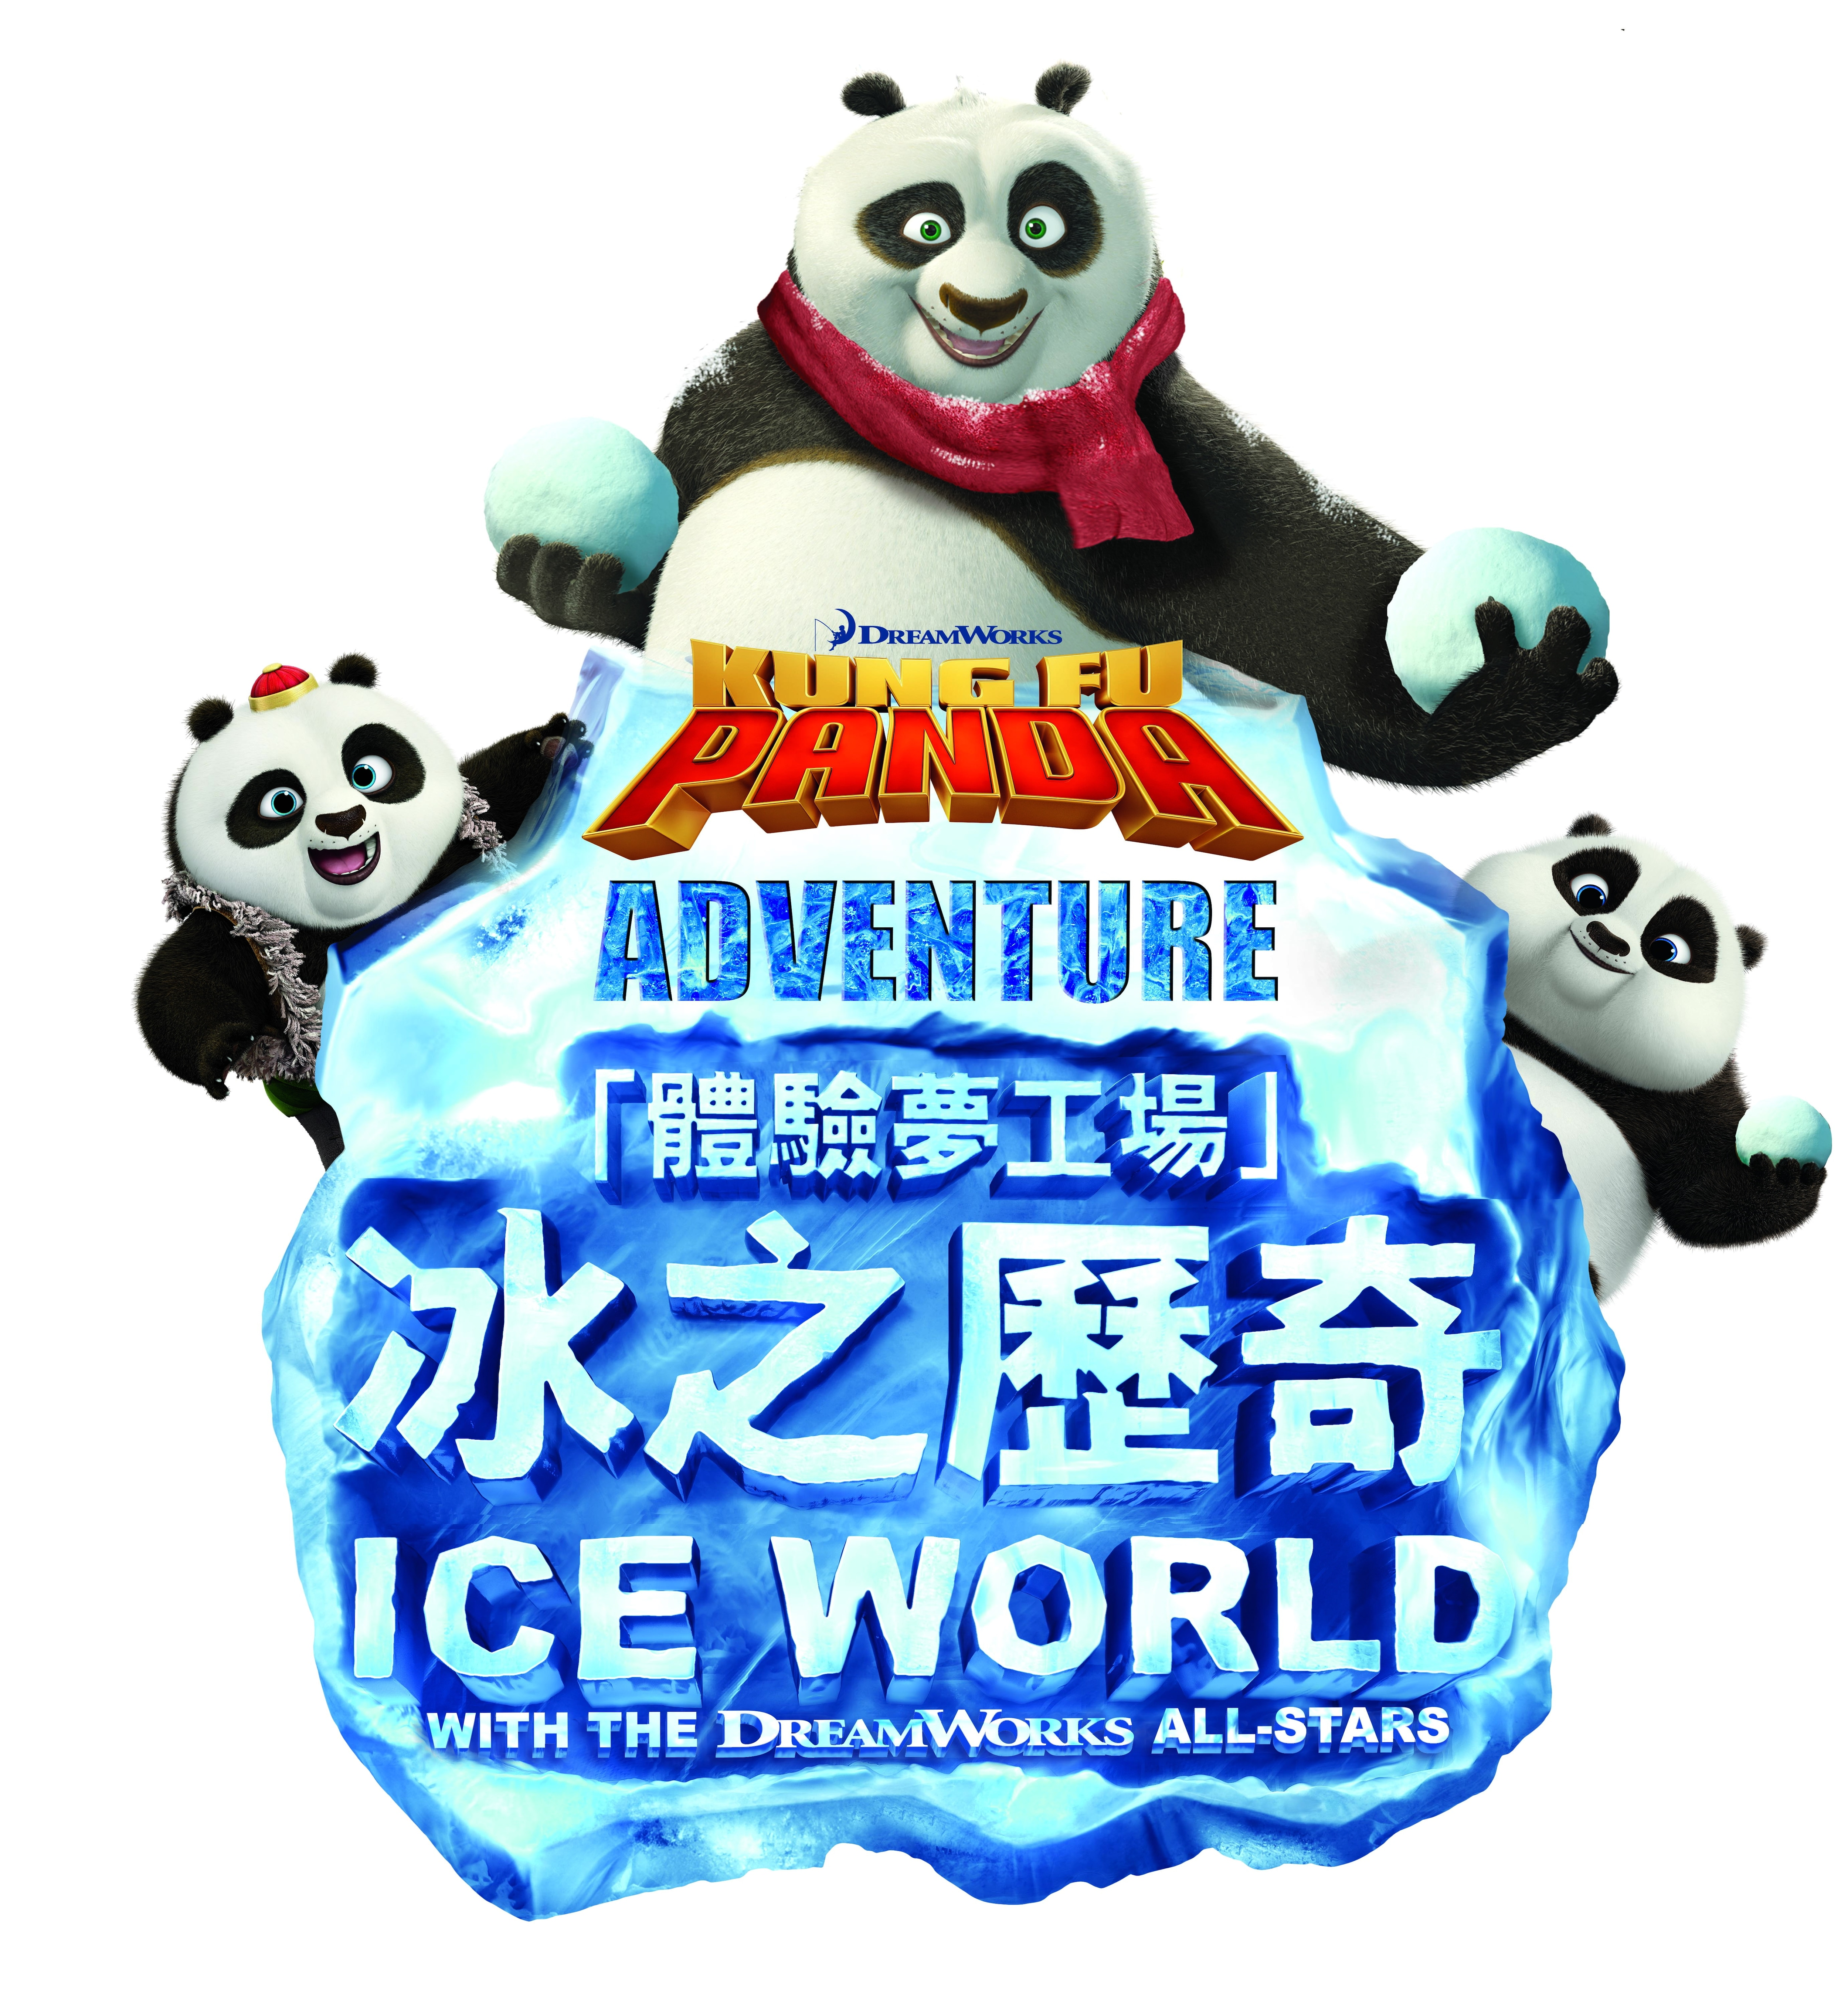 Kung Fu Panda Adventure - Ice World with the DreamWorks All-Stars